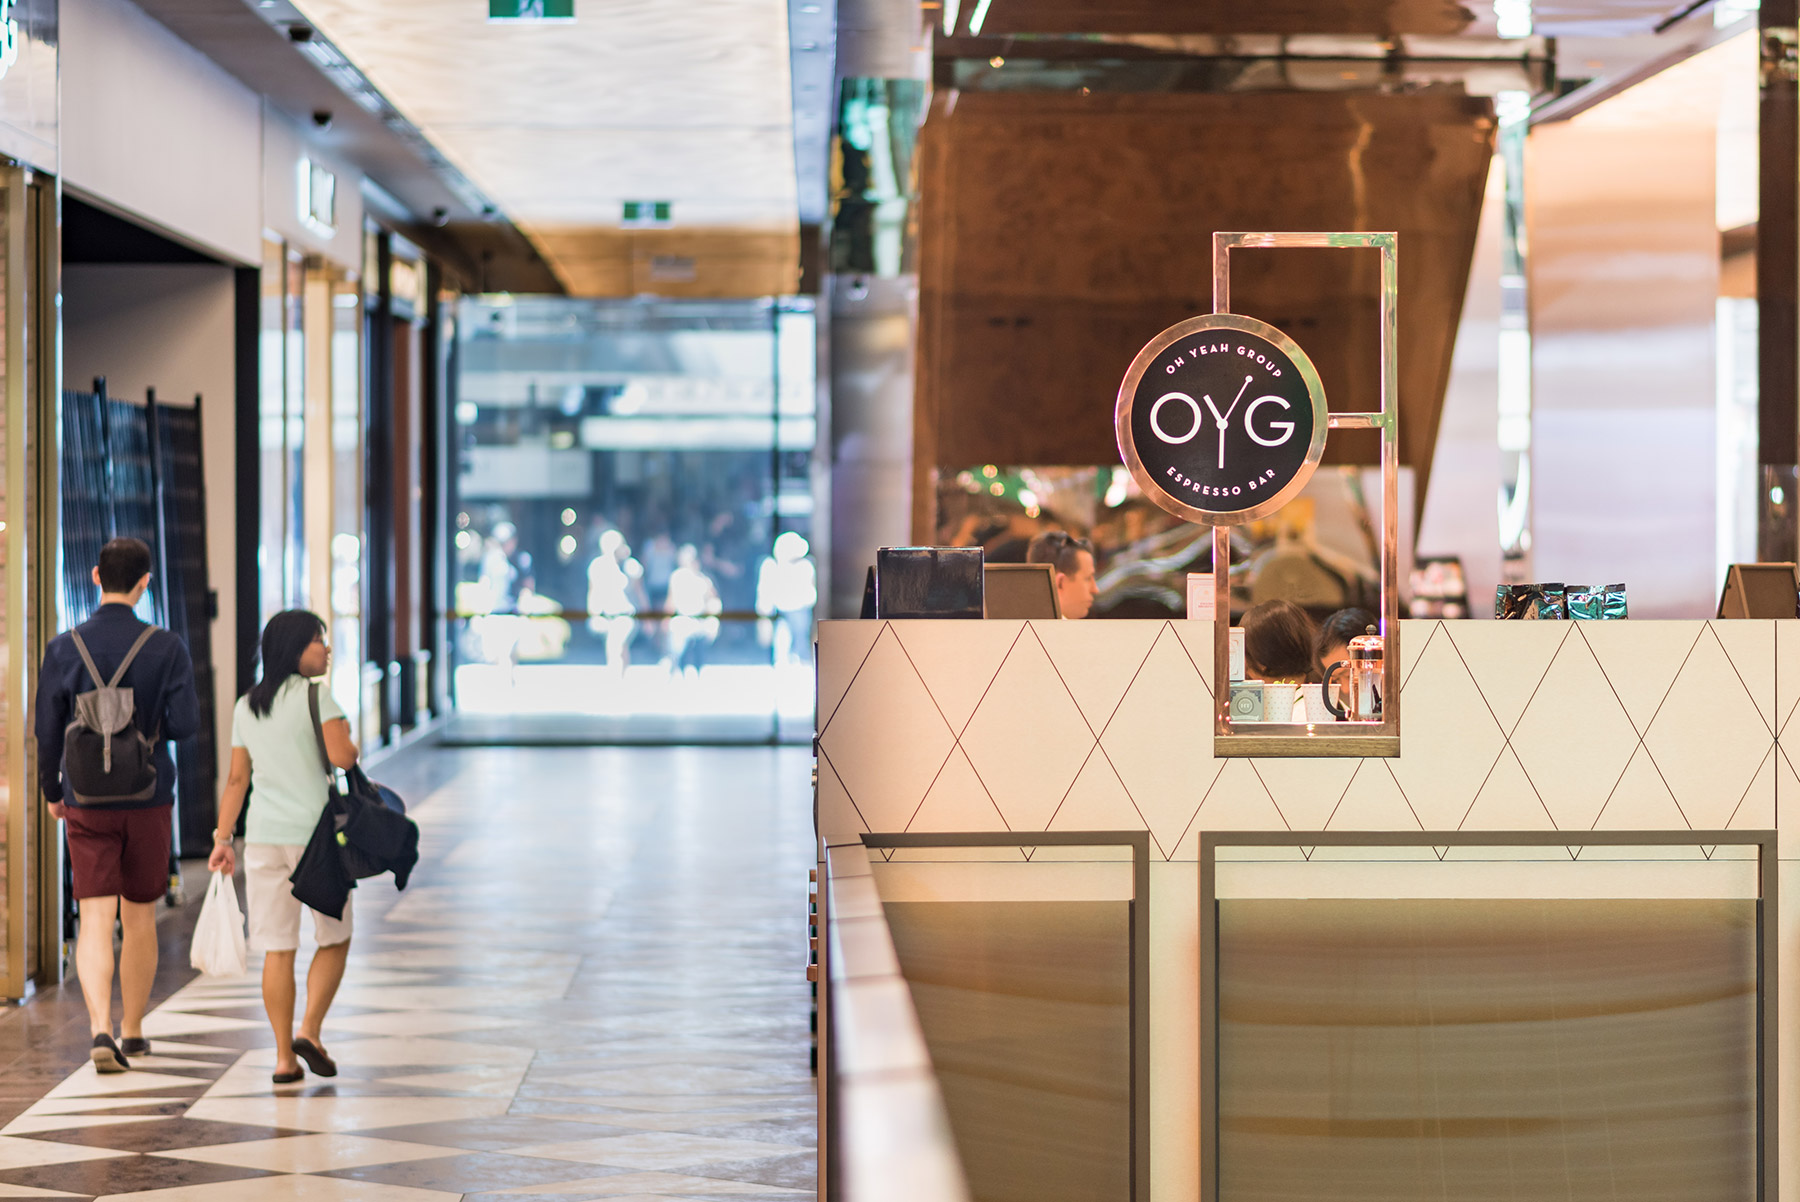 OYG Espresso Bar - interior design by Studio Y.